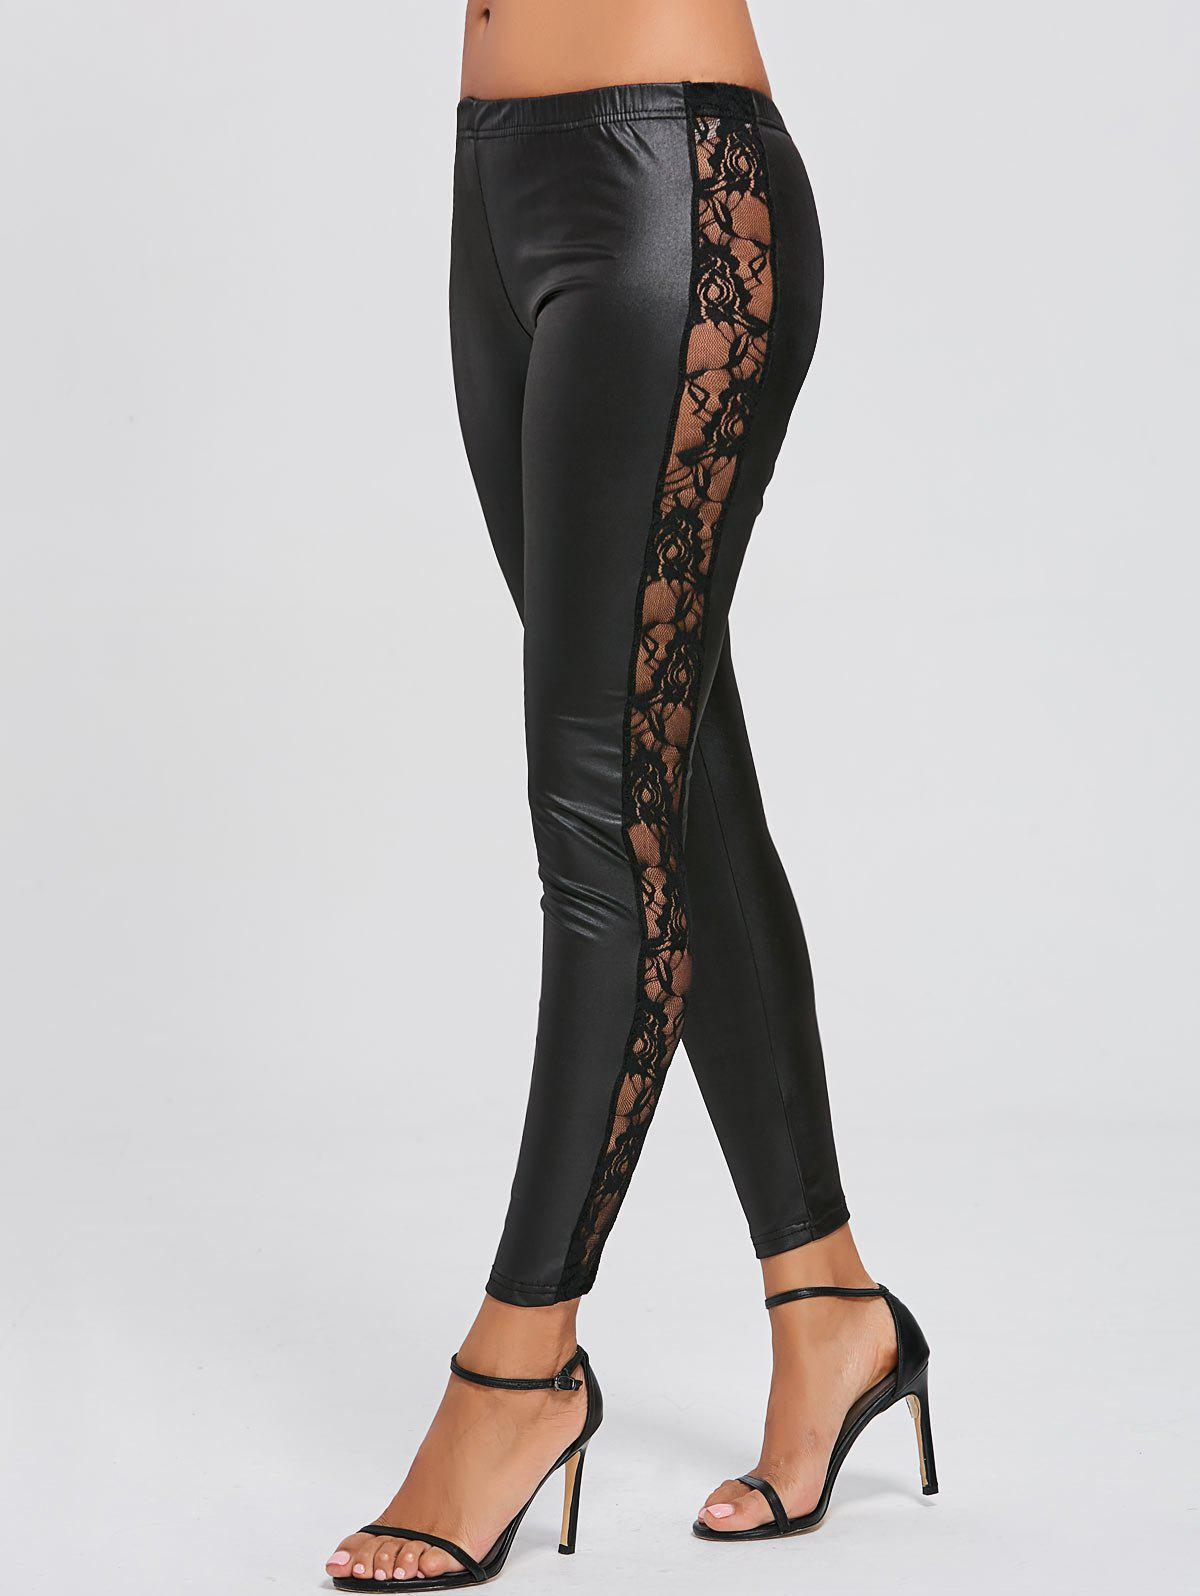 Lace Insert See-through Faux Leather Leggings - BLACK XL